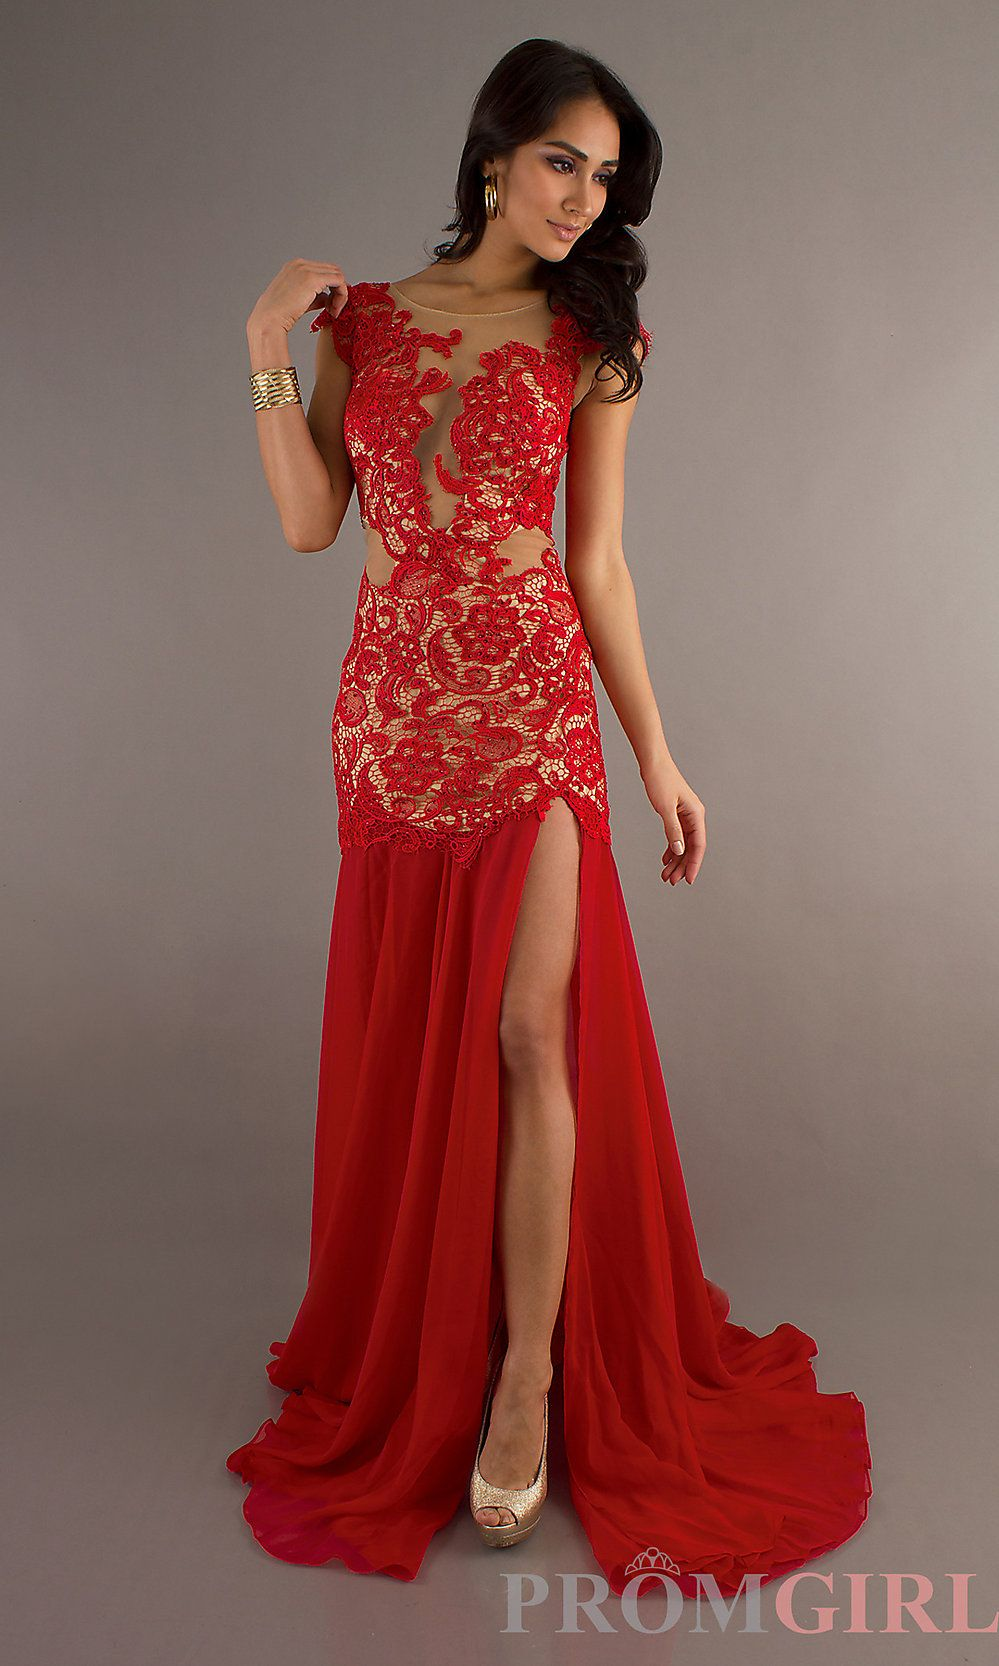 Sexy Evening Gown, Cassandra Stone Prom Red Long Dress- PromGirl ...